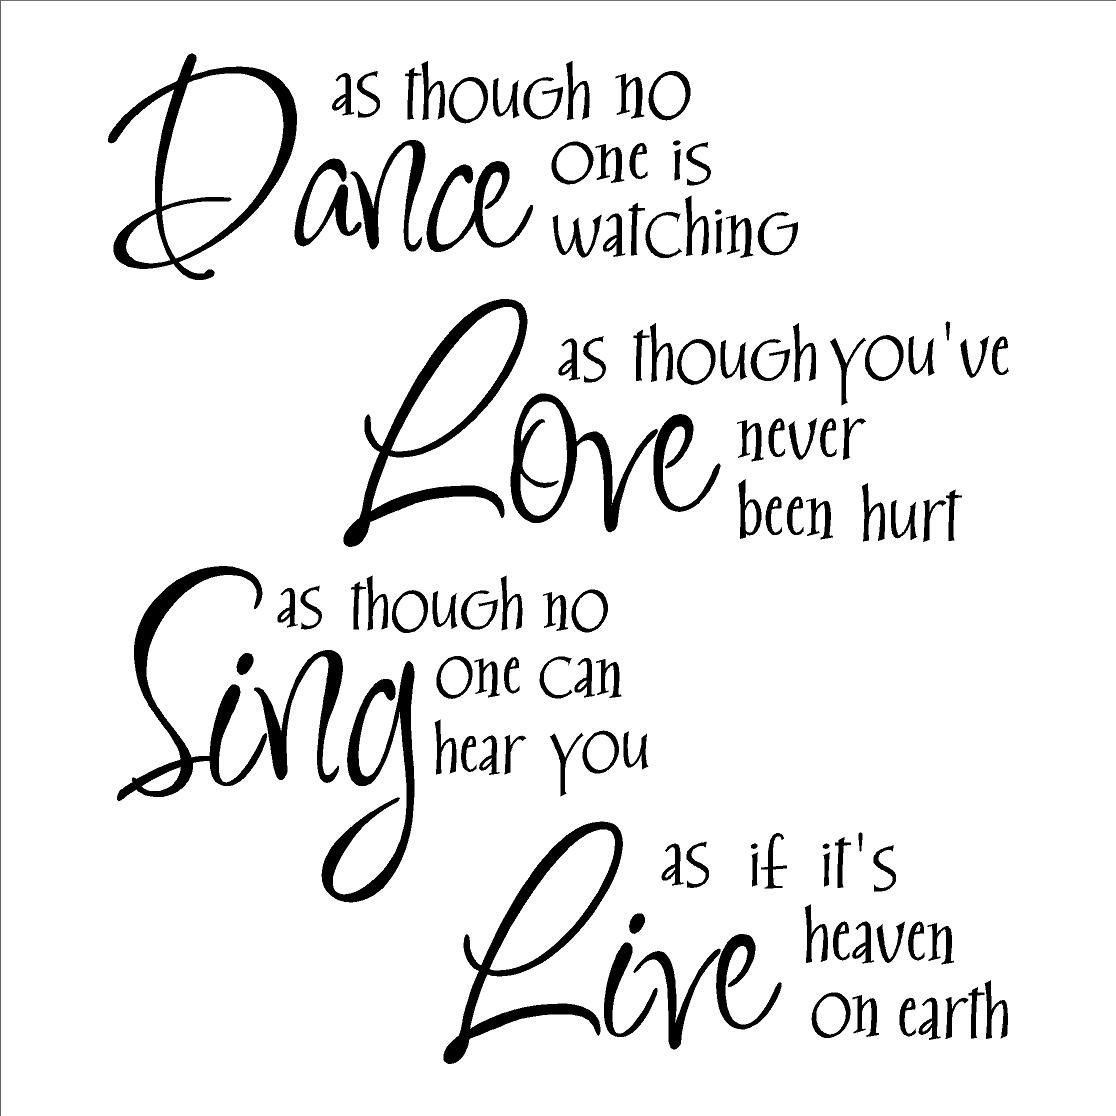 dance as though no one is watching love as though you ve never been The Great Debate TV dance as though no one is watching love as though you ve never been hurt sing as though no one can hear you live like it s heaven on earth